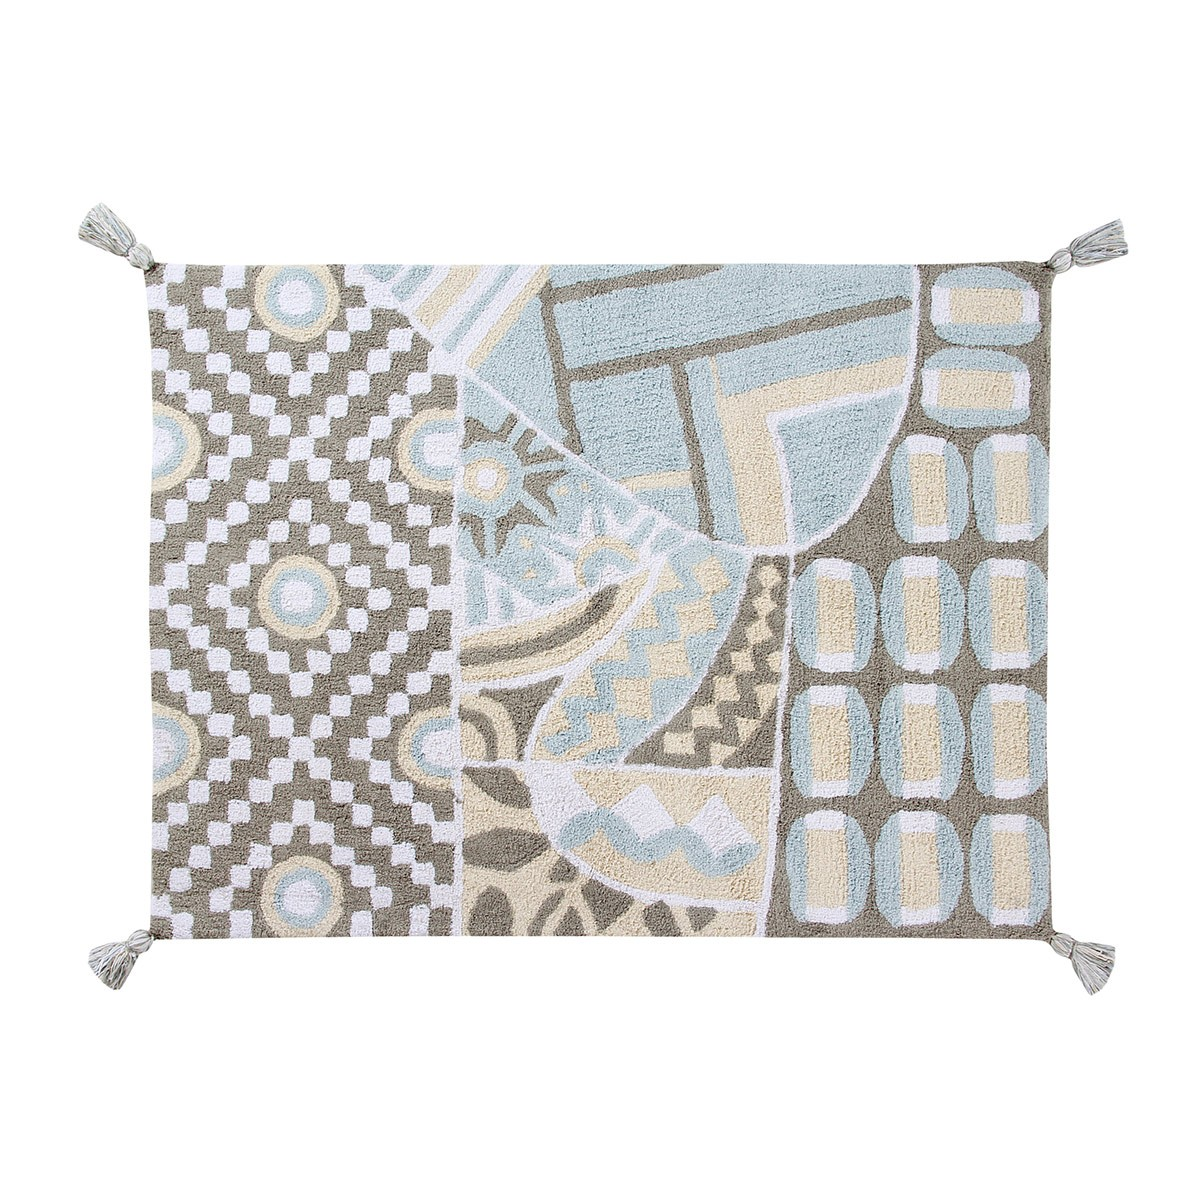 Πλενόμενο Χαλί (120x160) Lorena Canals Indian Bag Grey-Blue